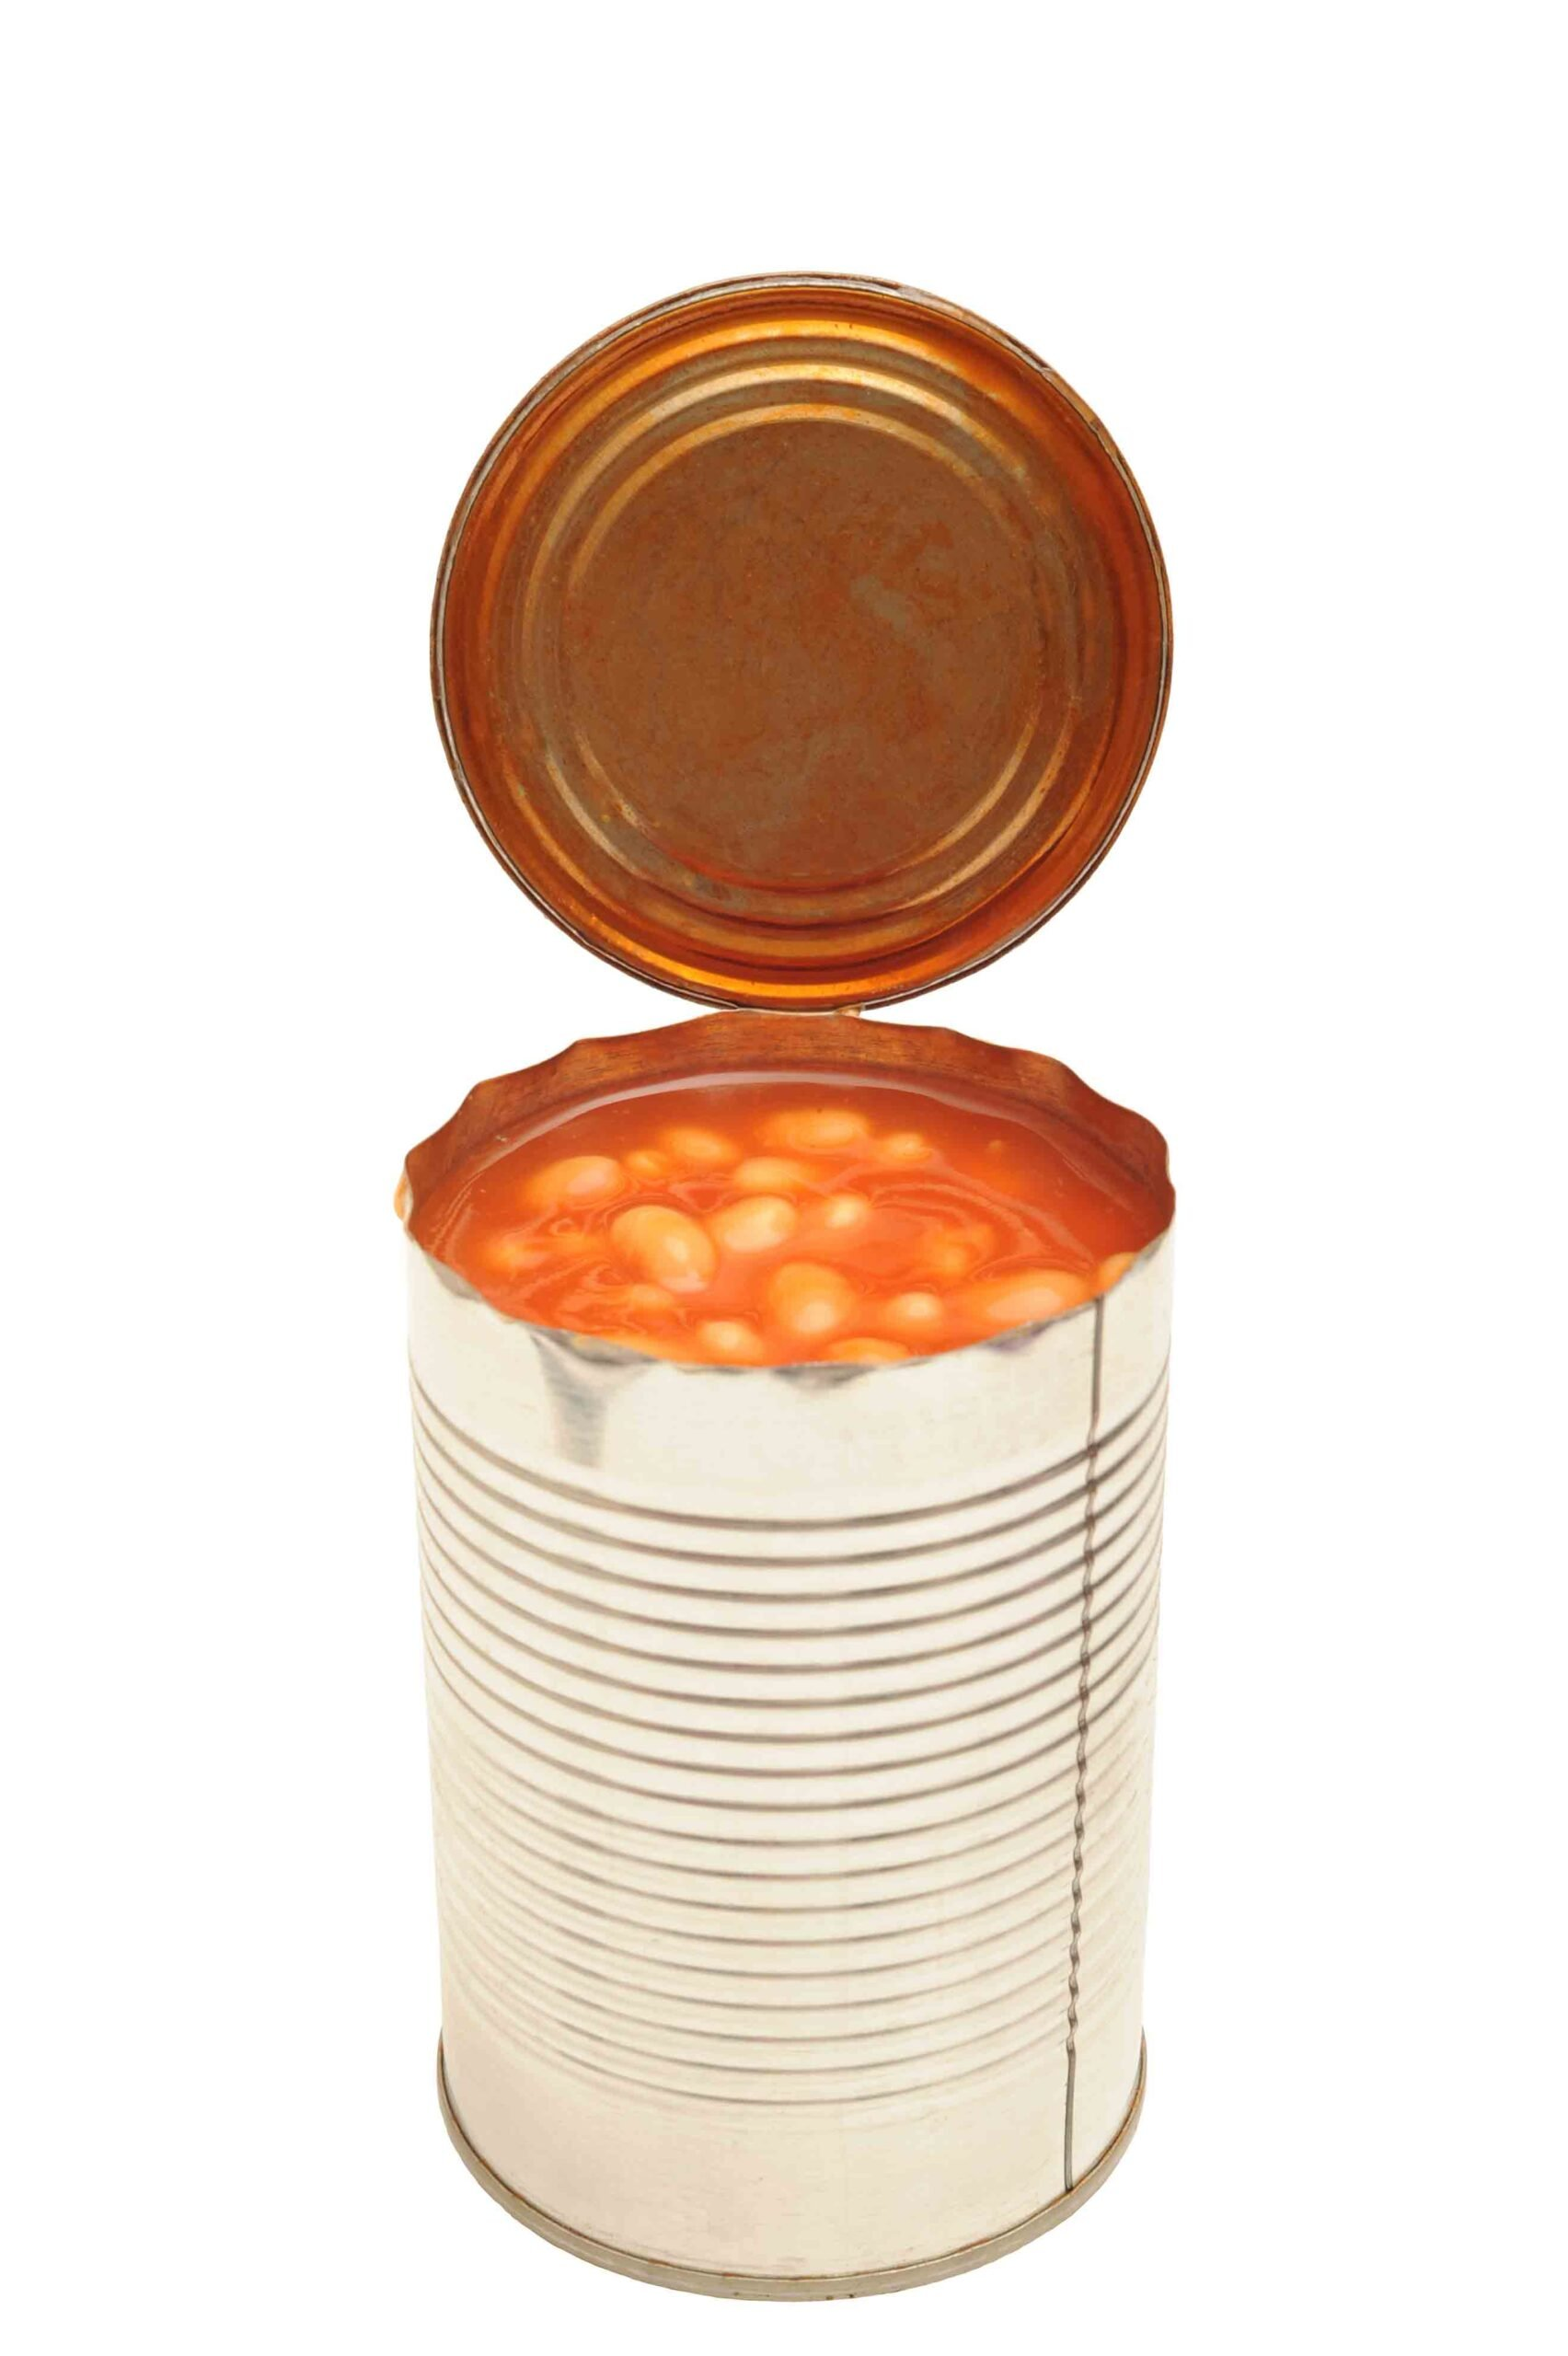 How to freeze baked beans from a can